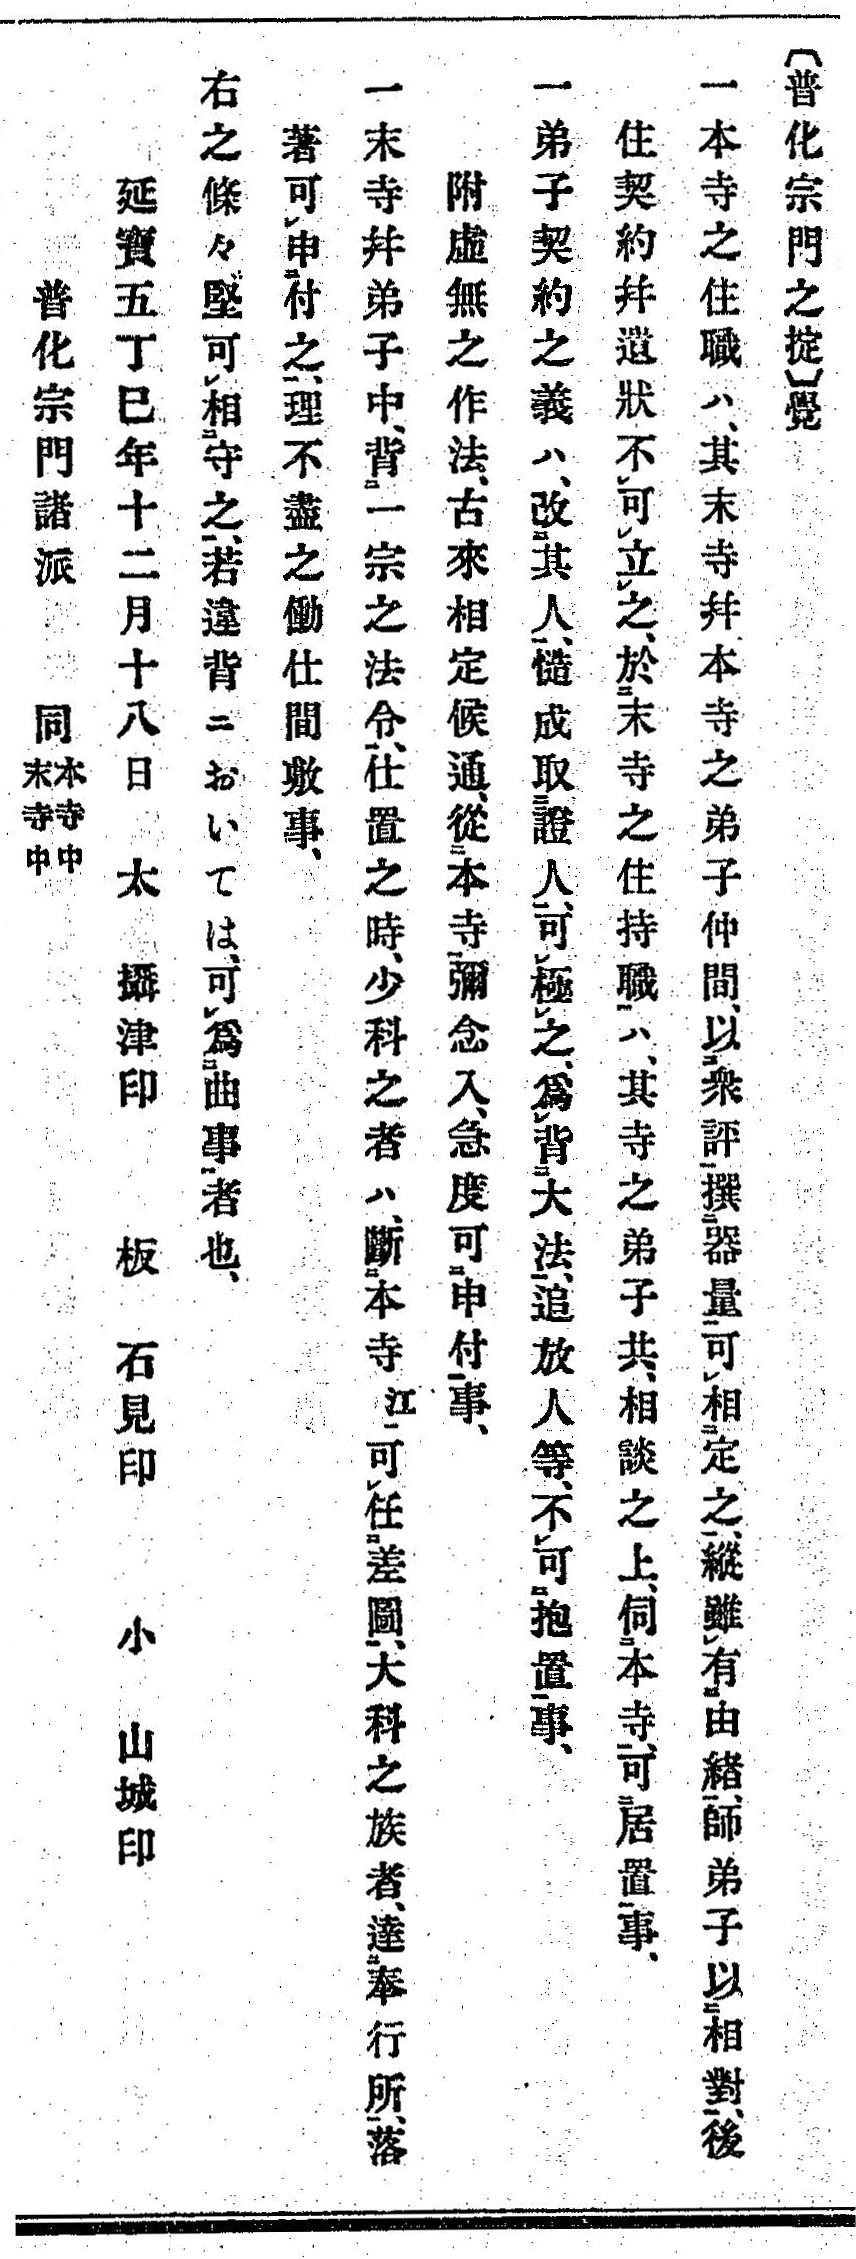 1678-1-11 Empō 5 Oboe document reproduction printed in Koji Ruien, 1880 edition